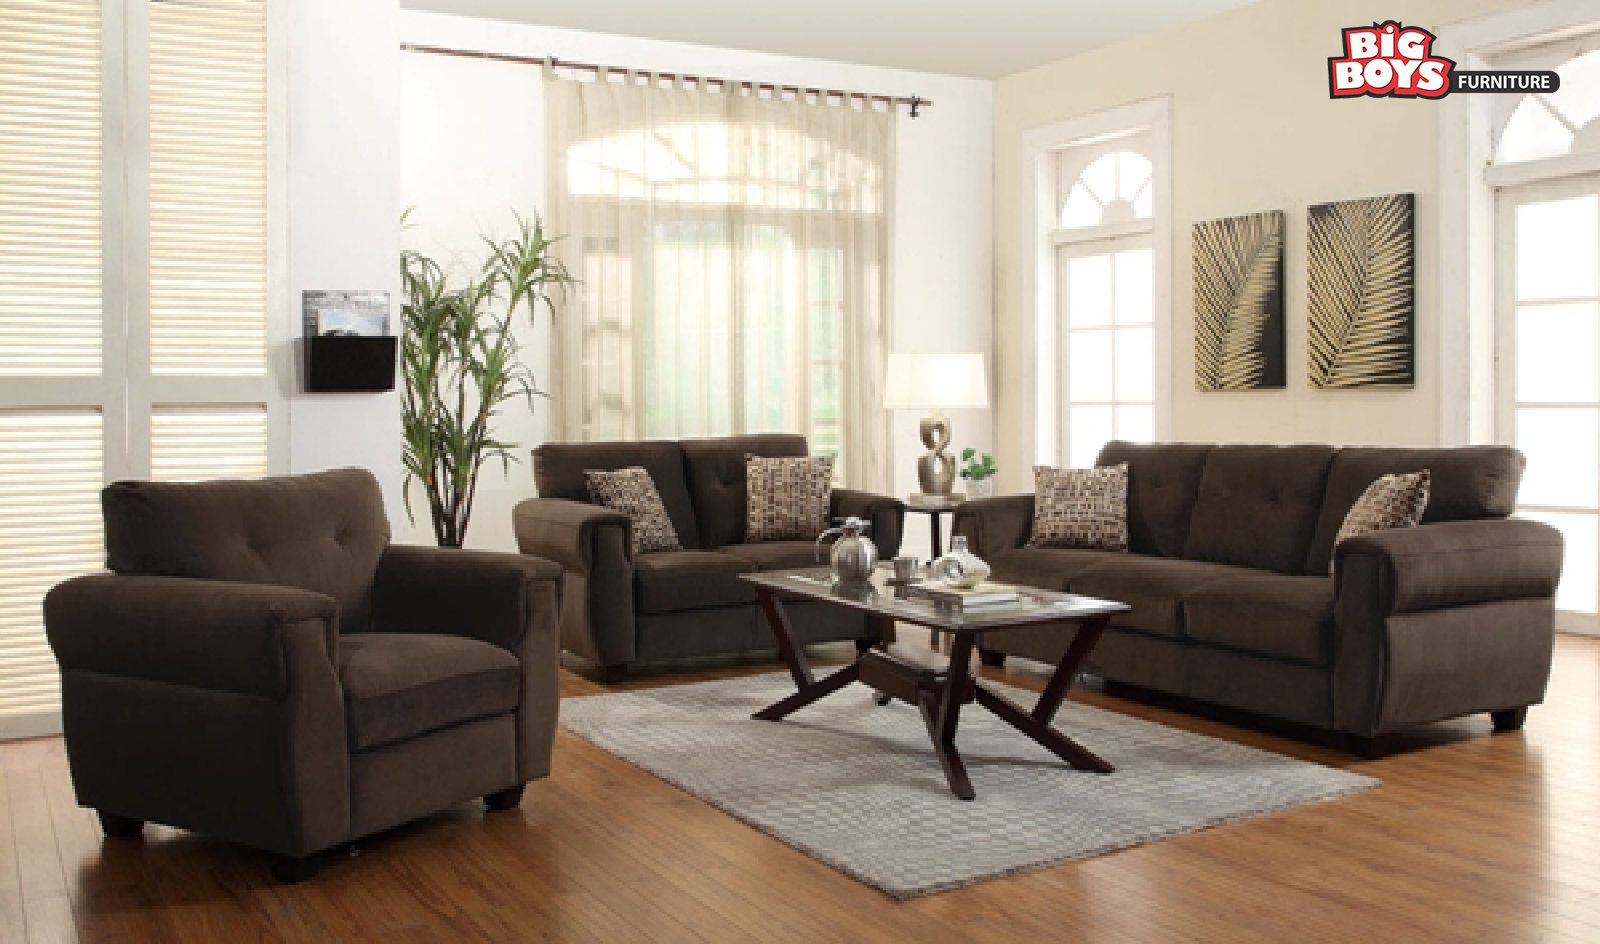 Sofa Set tables at discounted prices